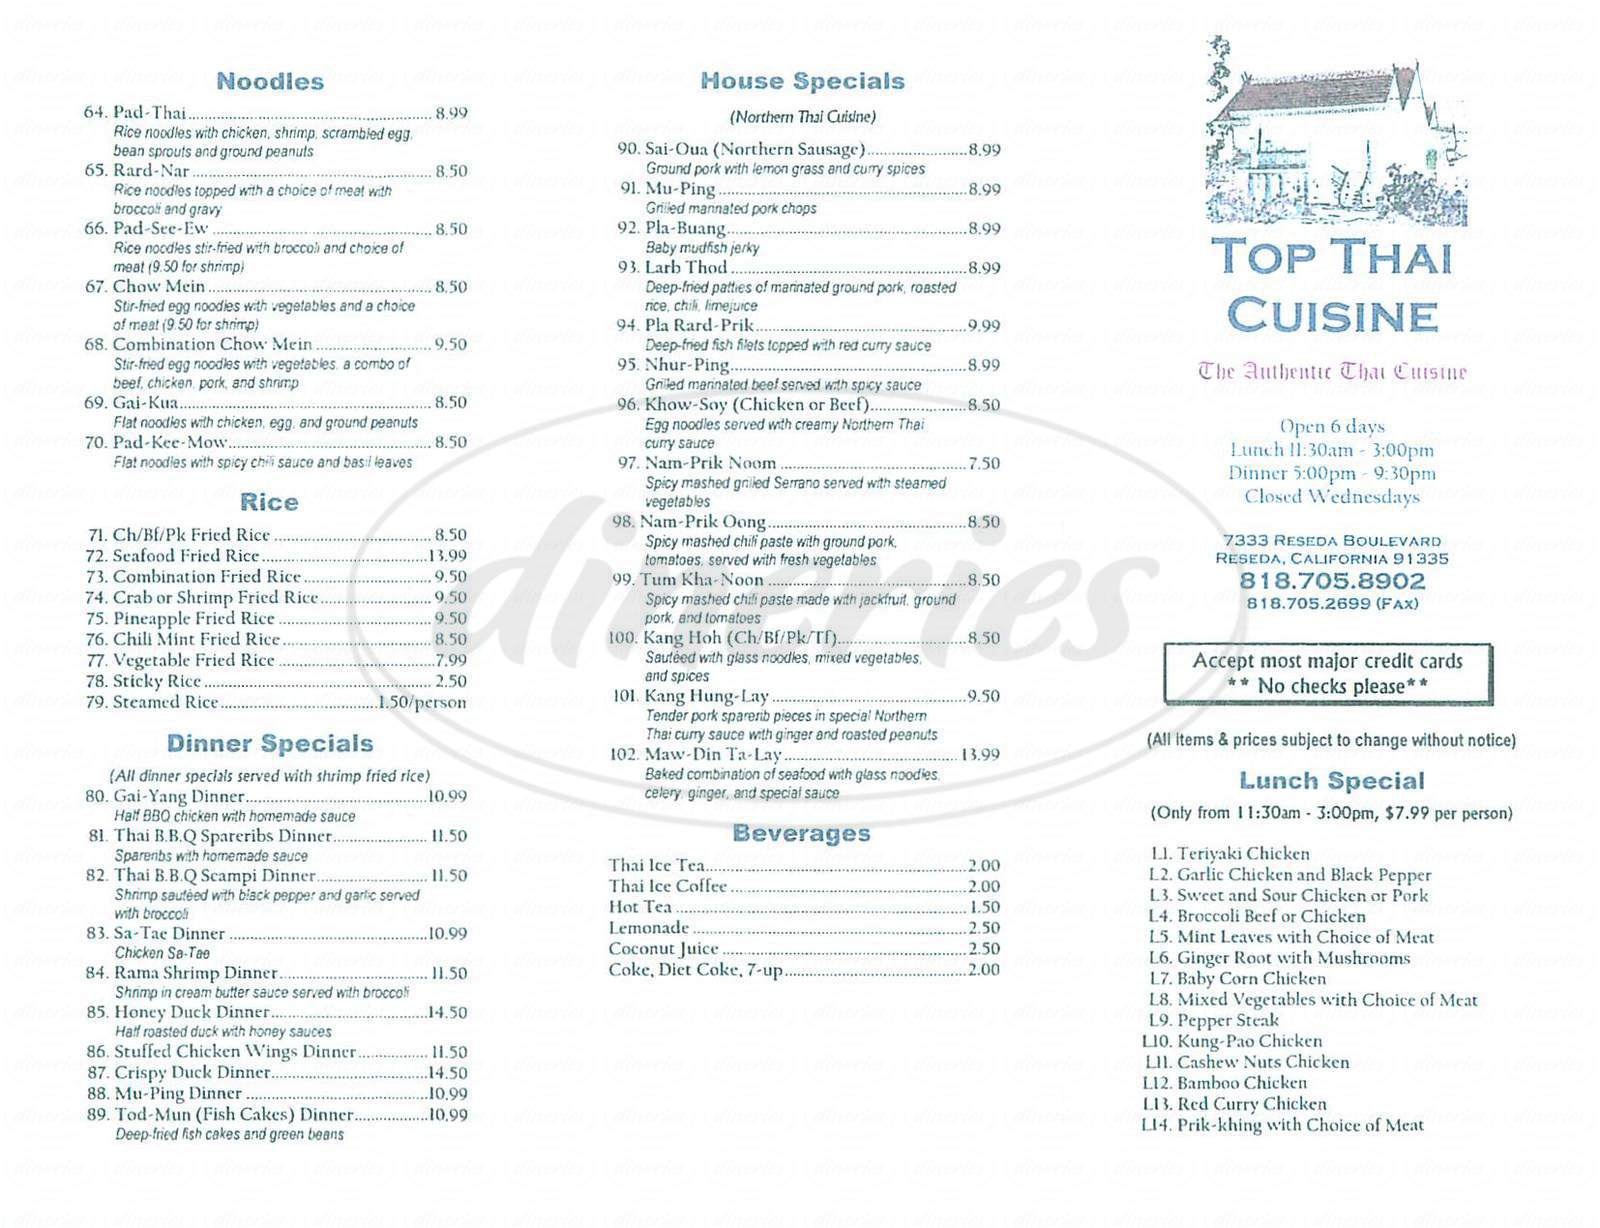 menu for Top Thai Cuisine